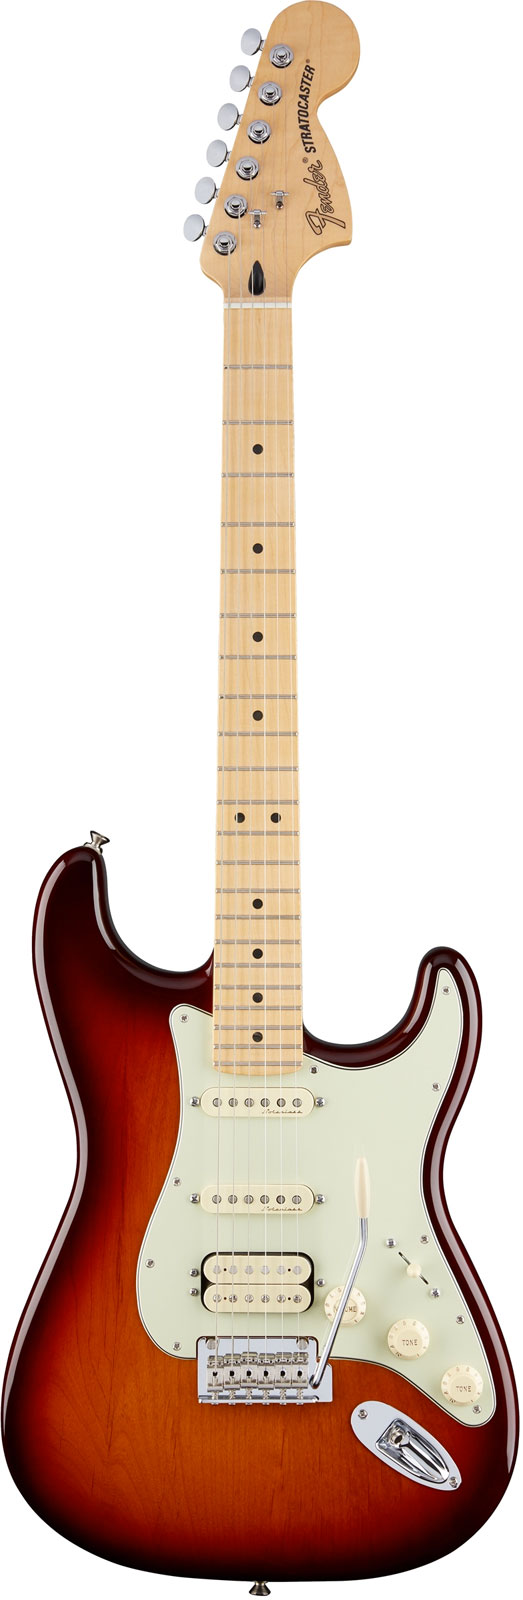 FENDER MEXICAN DELUXE STRATOCASTER HSS MN TOBACCO SUNBURST